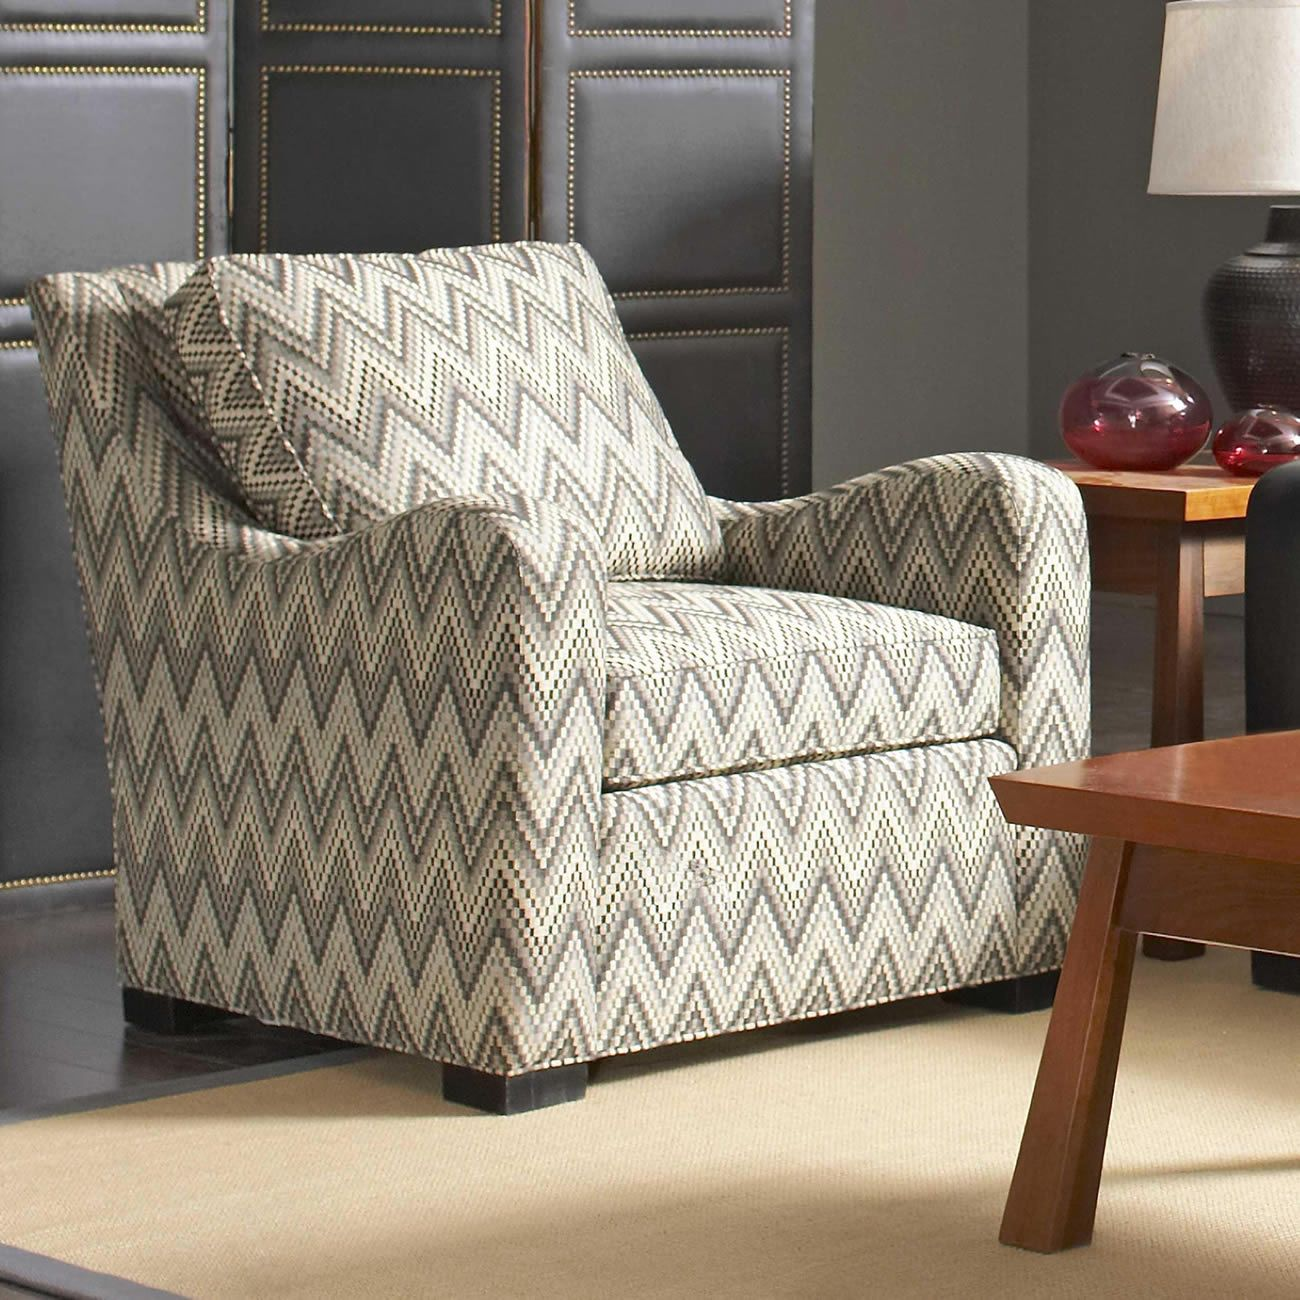 Stickley Furniture San Jose upholstered chair